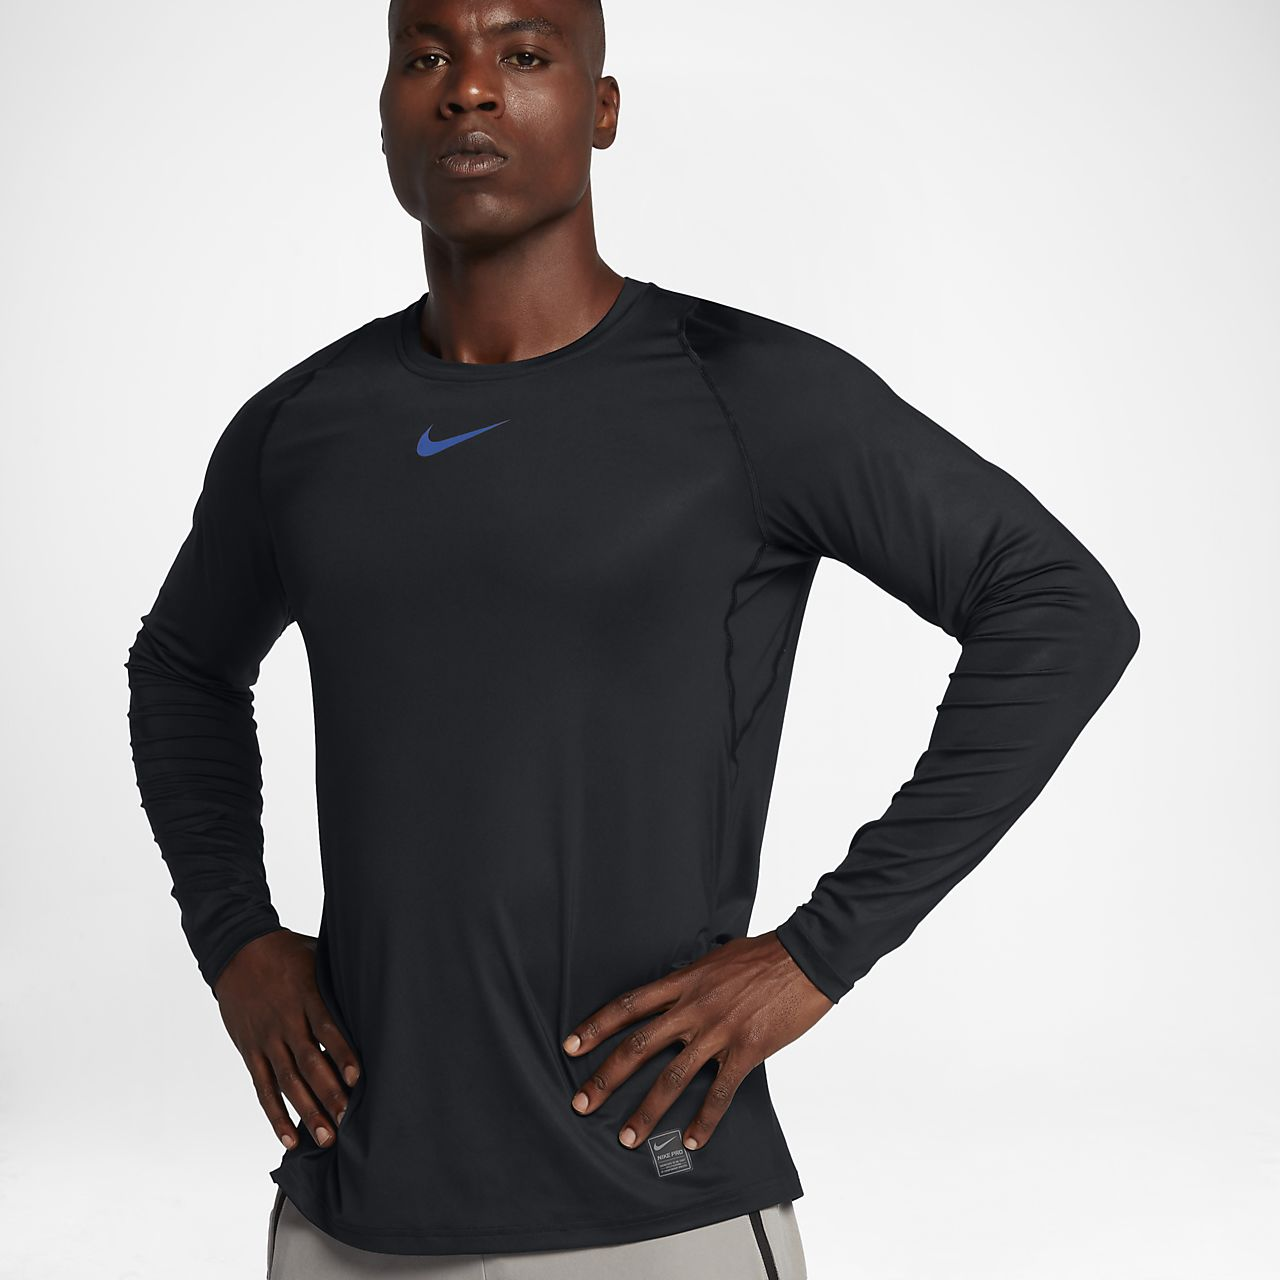 ... Nike Pro Colorburst Men's Long Sleeve Top